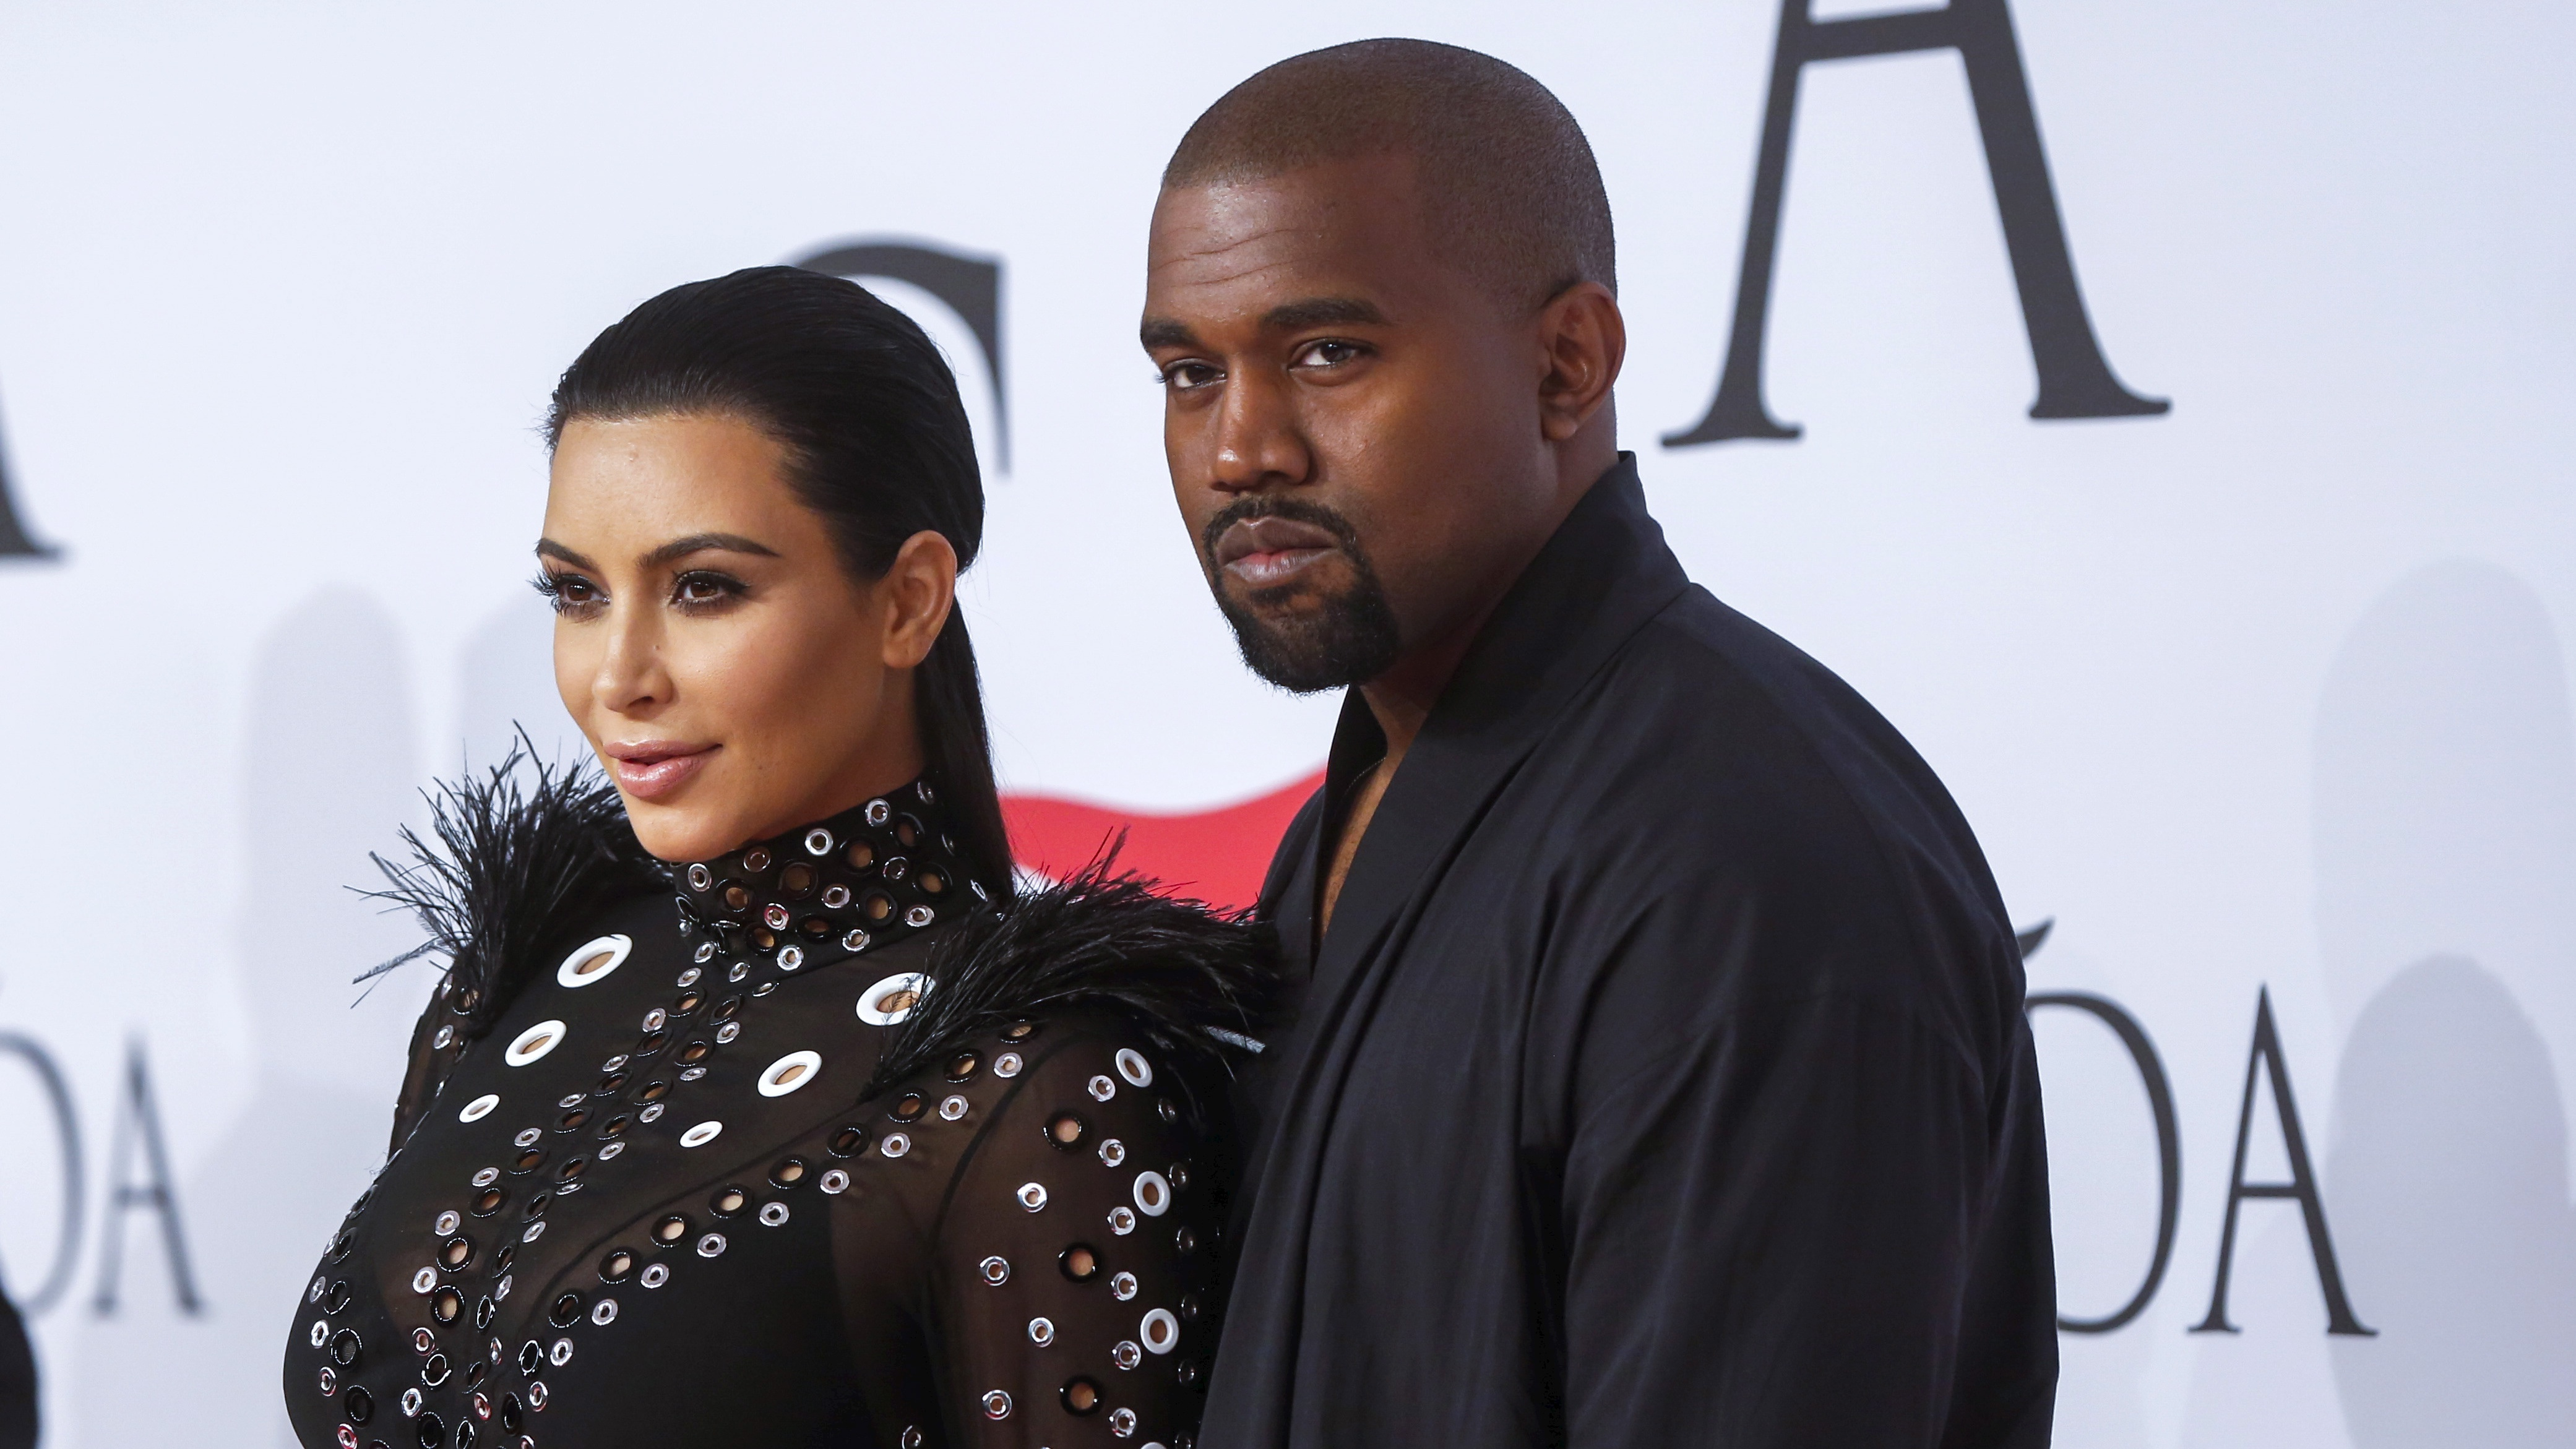 d44f1ce42f All you need to know about fashion is Kanye West — Quartz